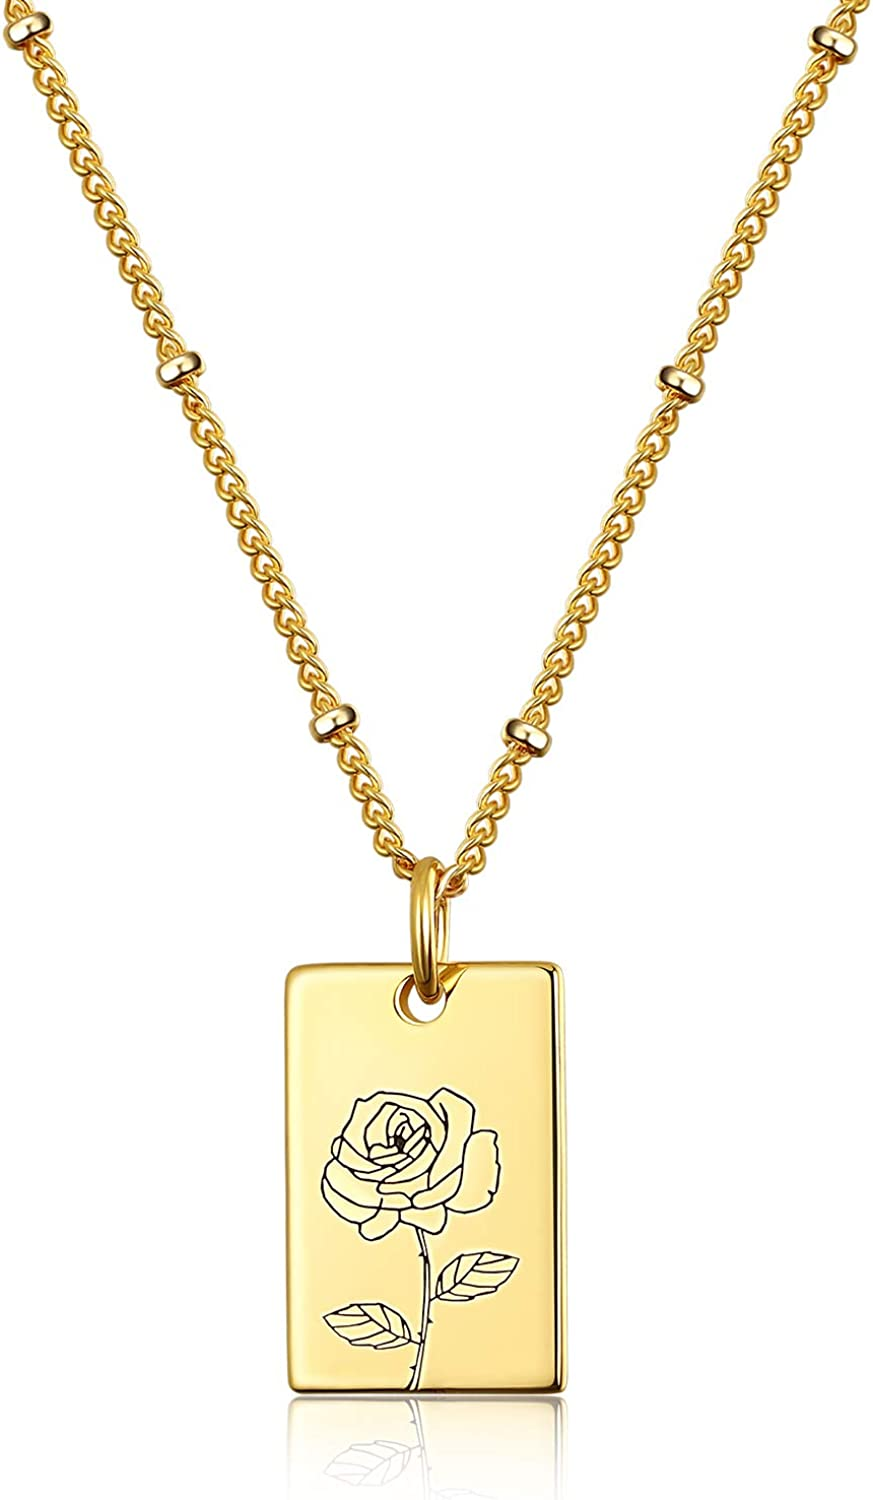 KissYan Birth Month Flower Necklace Personalized Ranking TOP20 Plate 18K Gold Memphis Mall